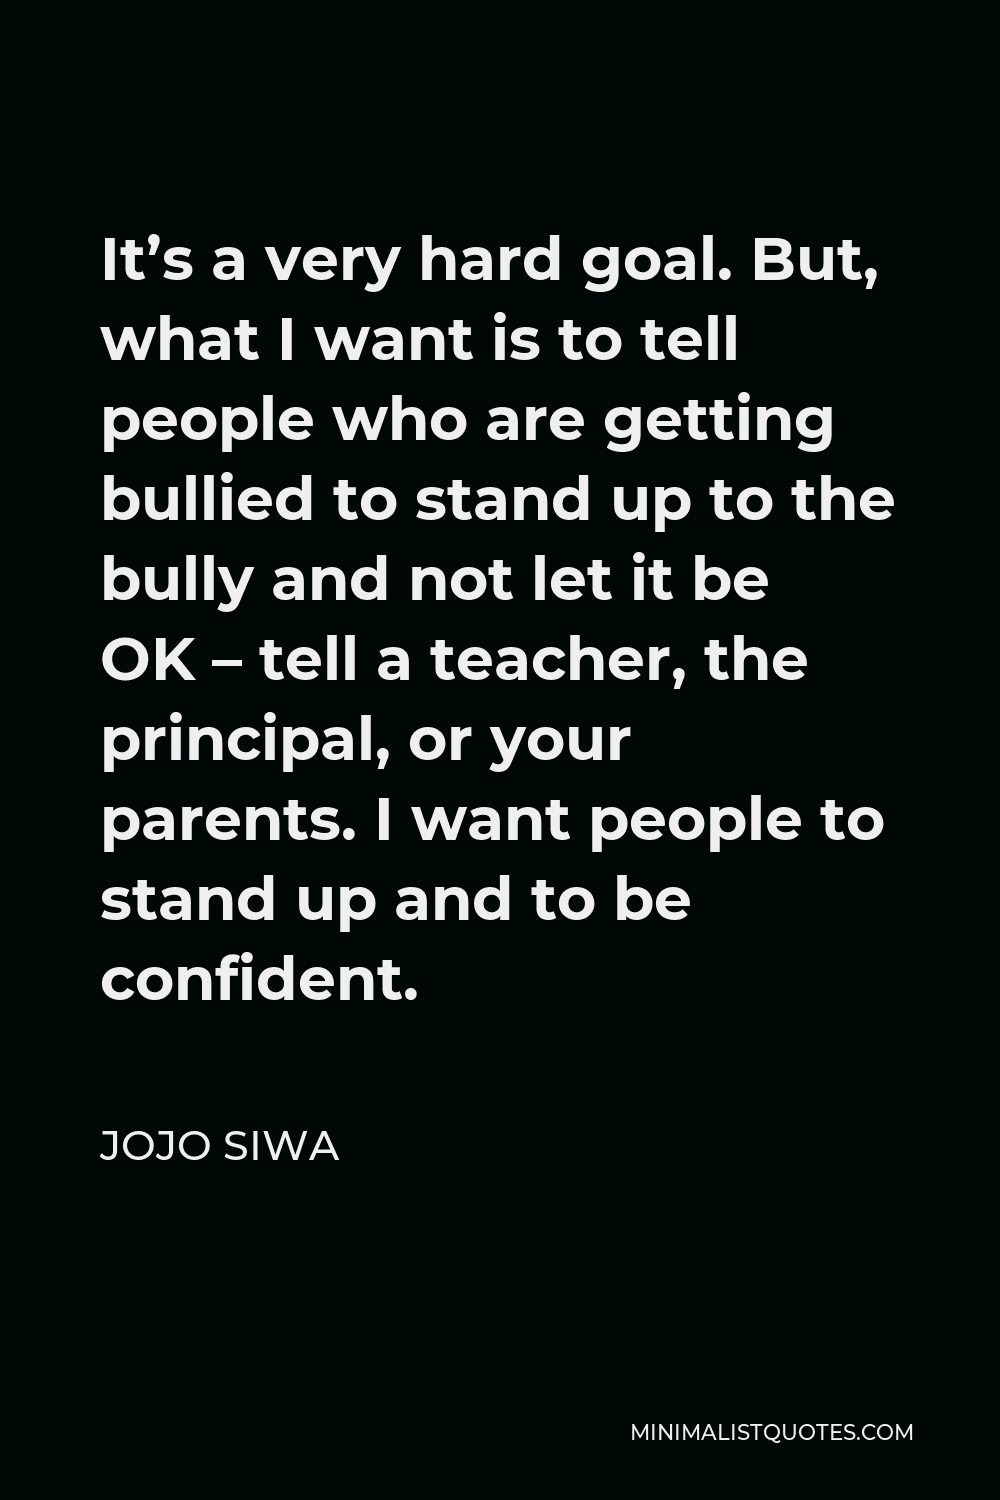 JoJo Siwa Quote - It's a very hard goal. But, what I want is to tell people who are getting bullied to stand up to the bully and not let it be OK – tell a teacher, the principal, or your parents. I want people to stand up and to be confident.